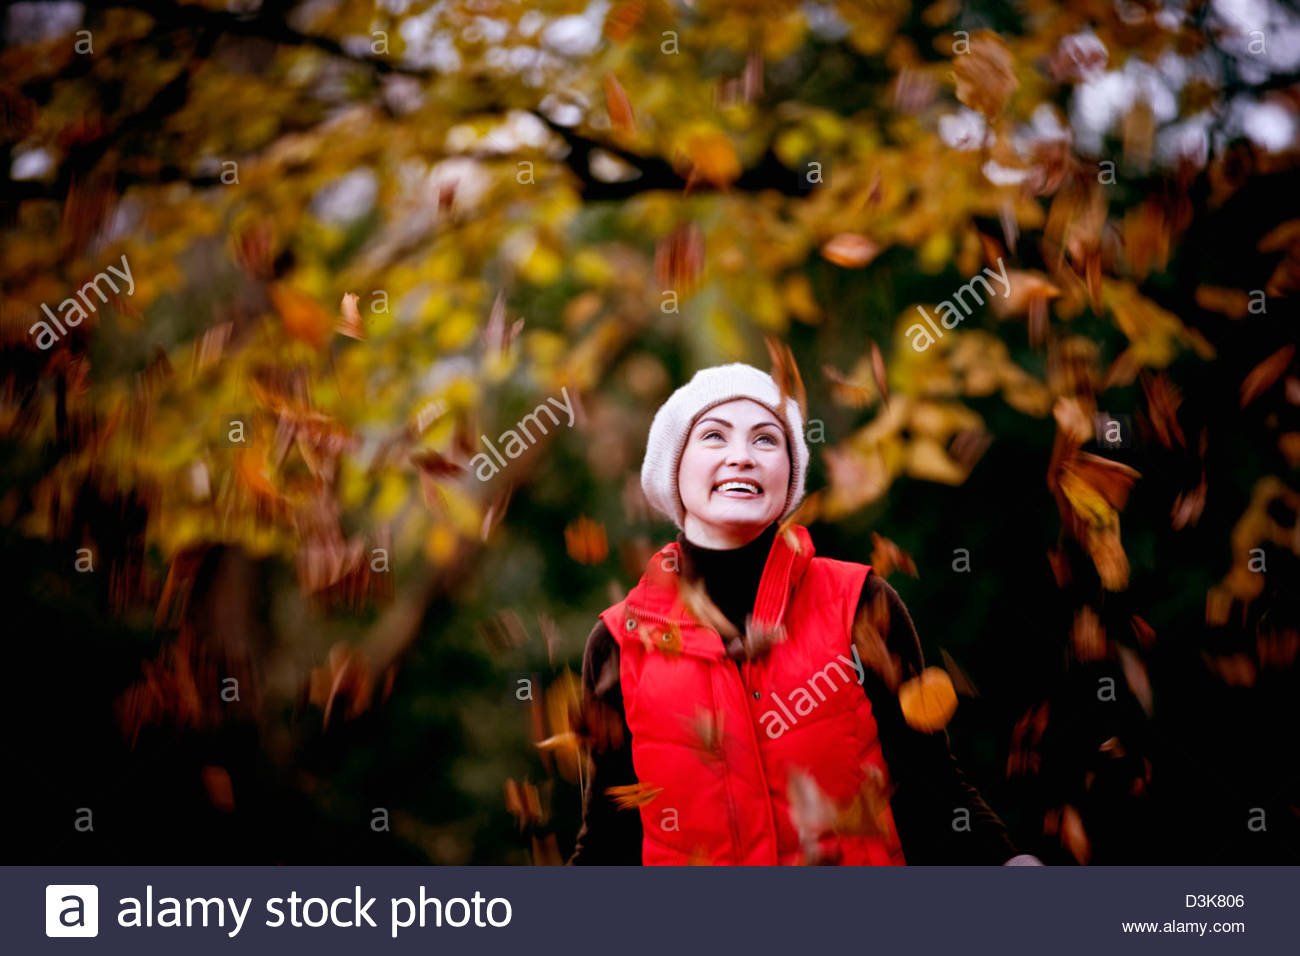 A woman standing amongst falling autumn leaves - Stock Image